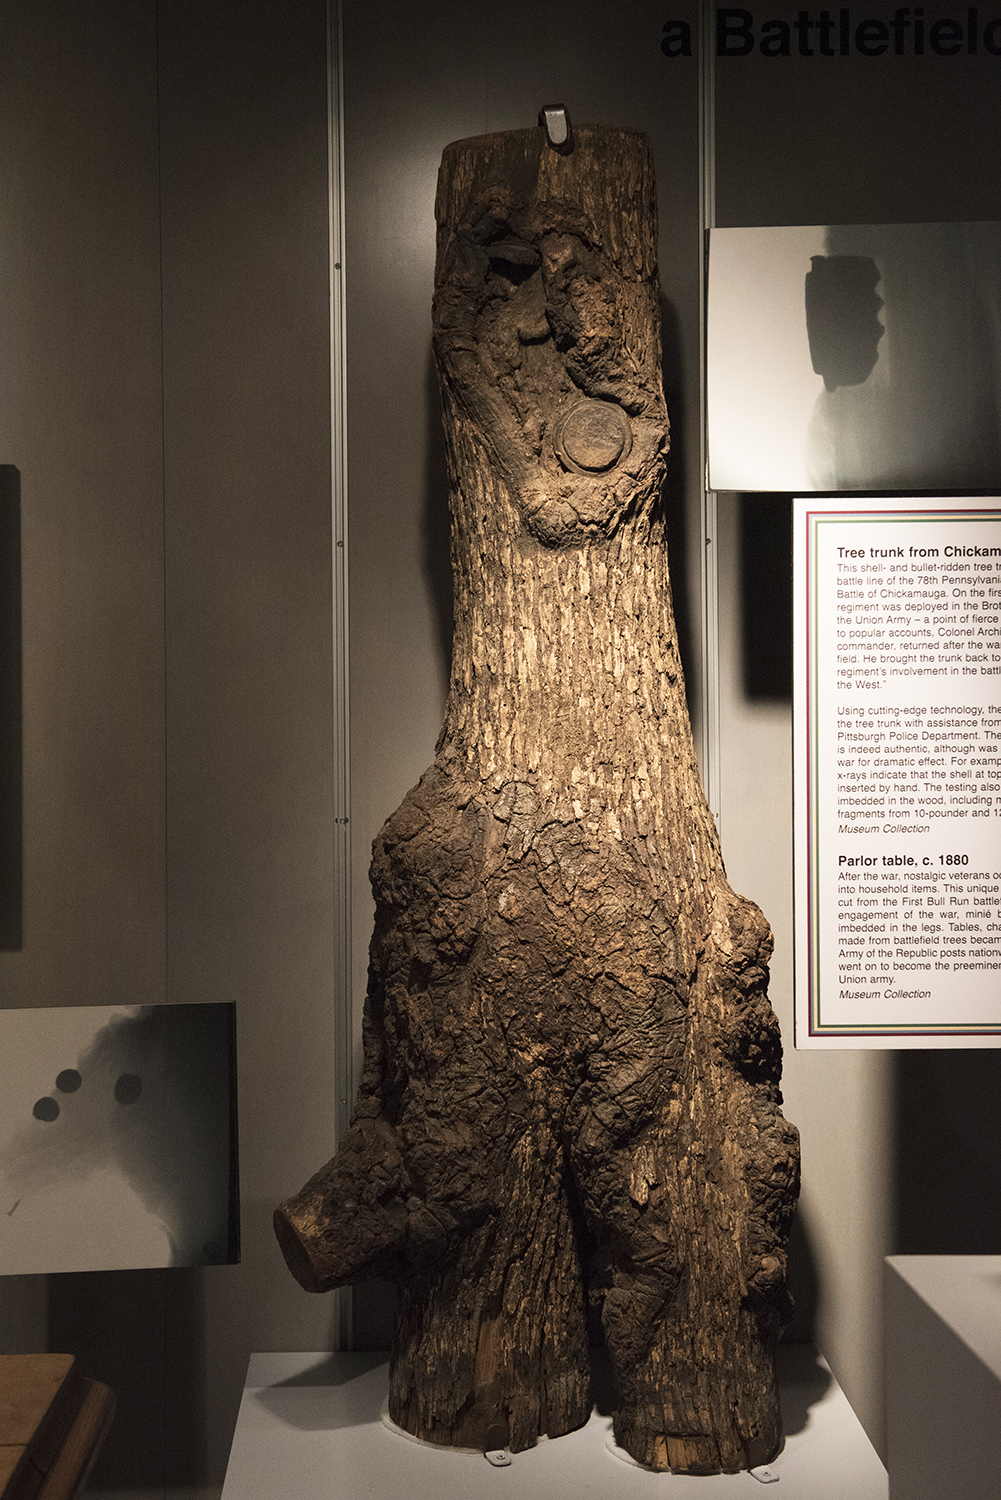 Tree trunk from Chickamauga Battlefield, 1863 | Special Collections Gallery, Heinz History Center